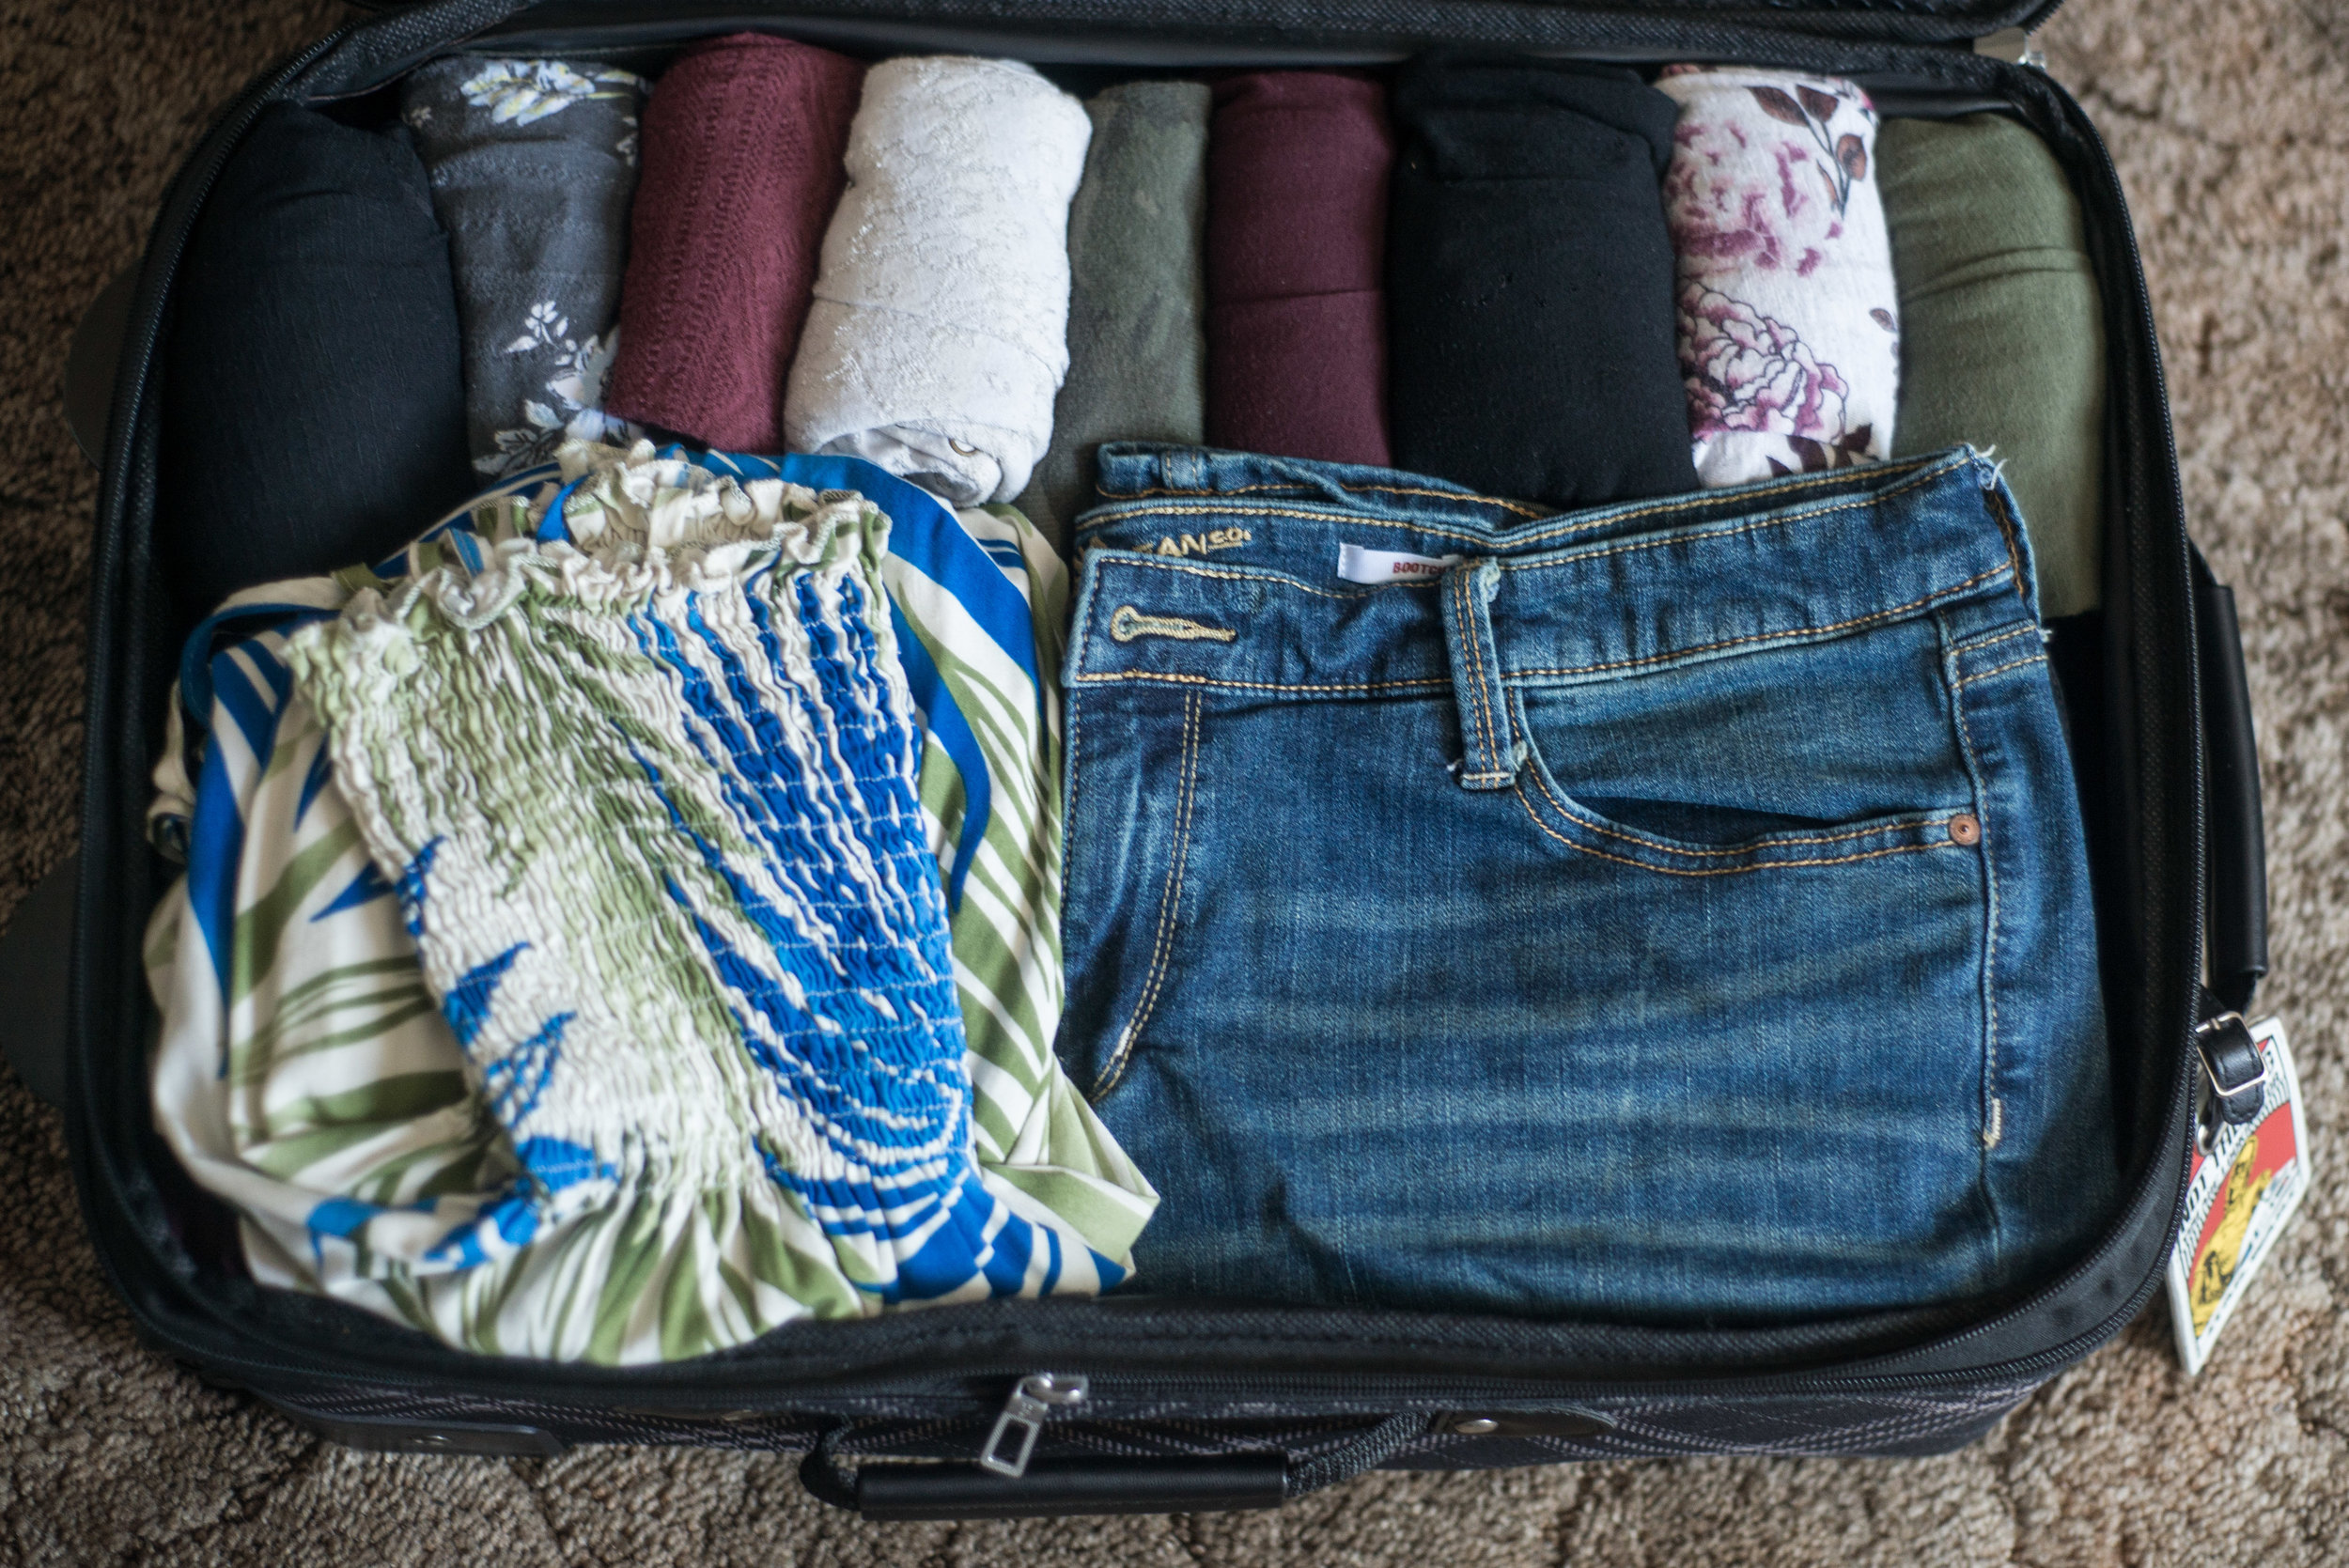 How to Pack for a 2 Week Vacation - In a Carry On! Overview